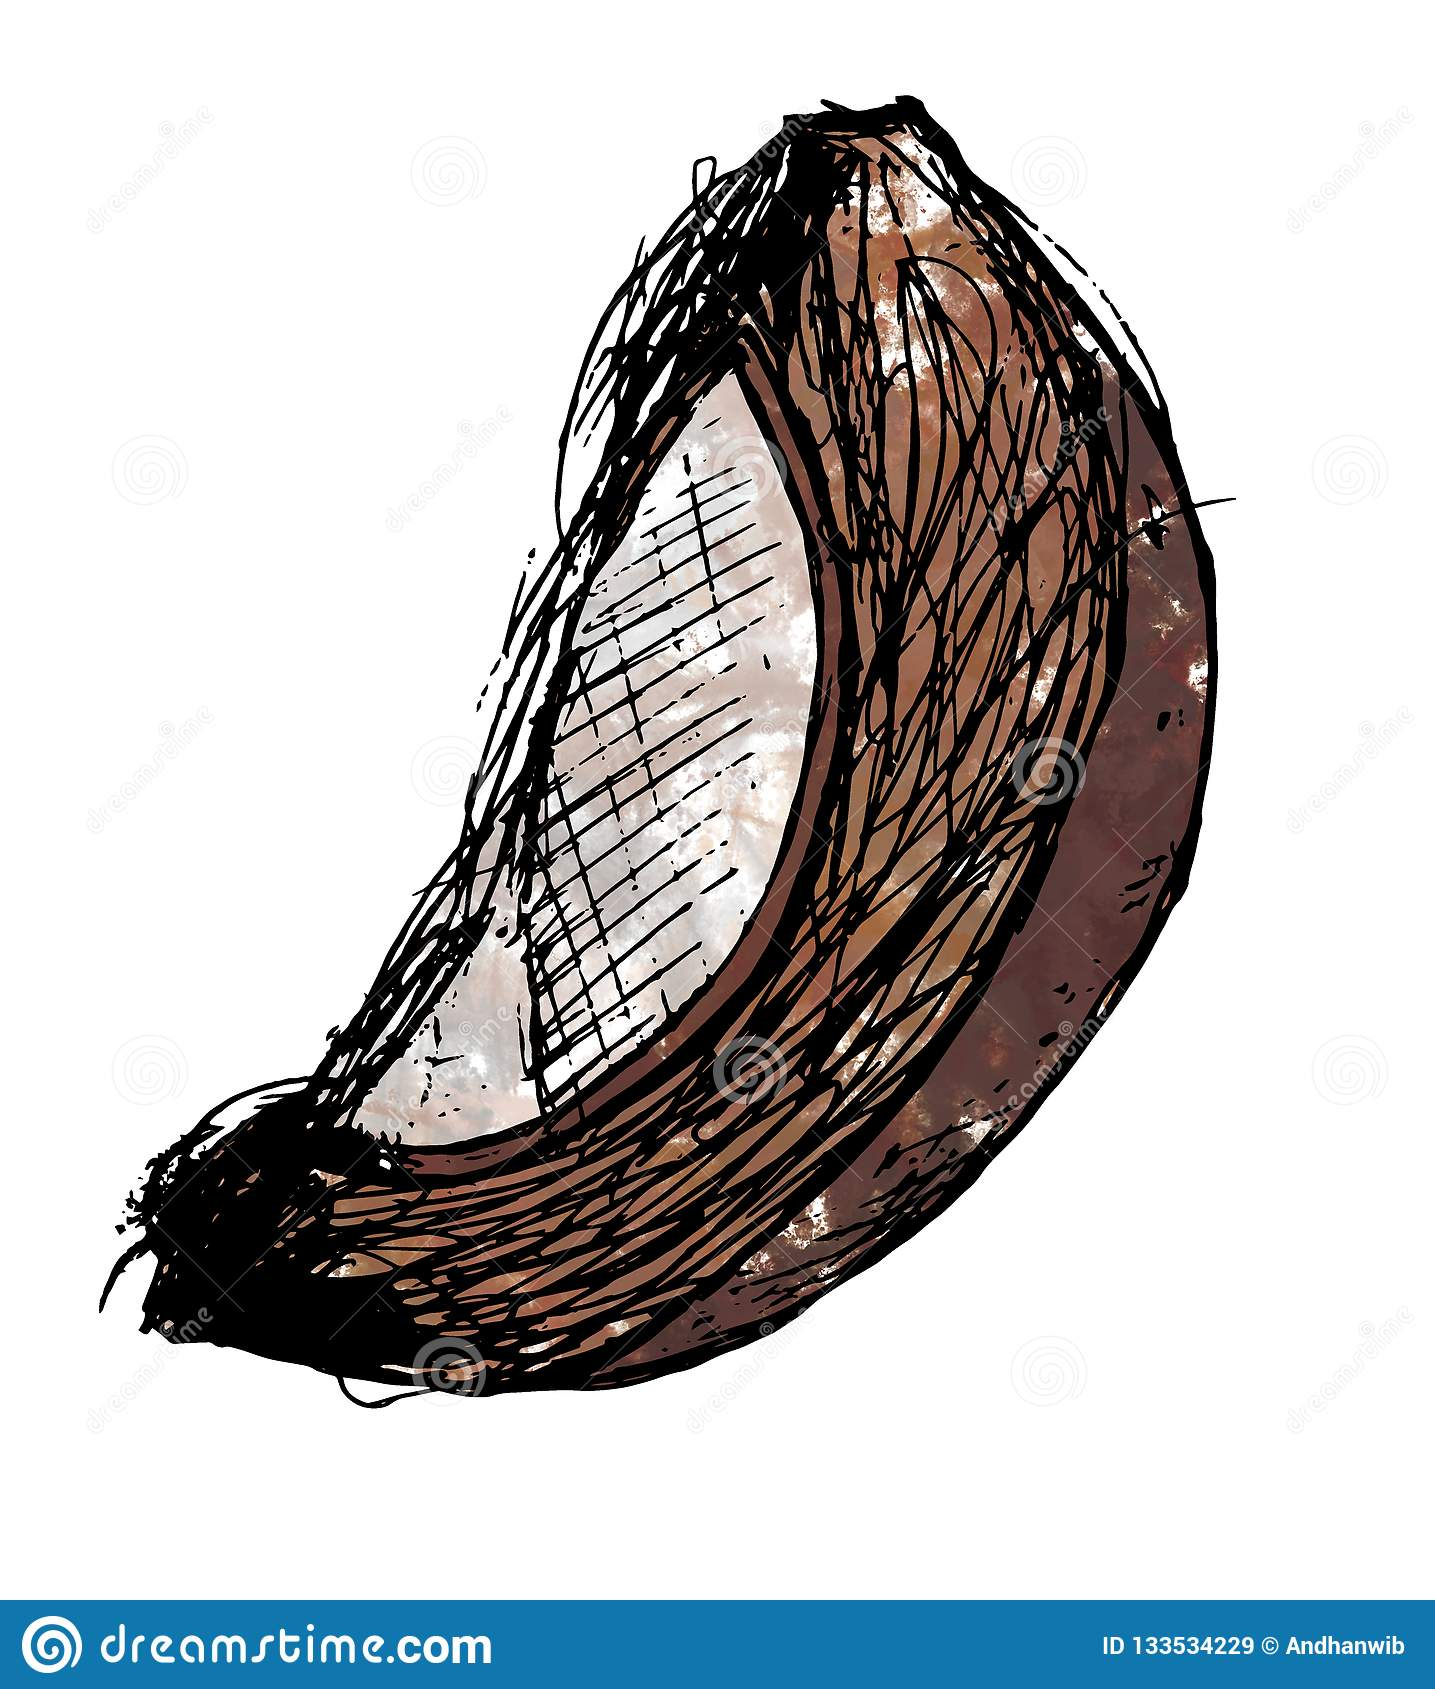 Mature Coconut Wedge Watercolour Illustration